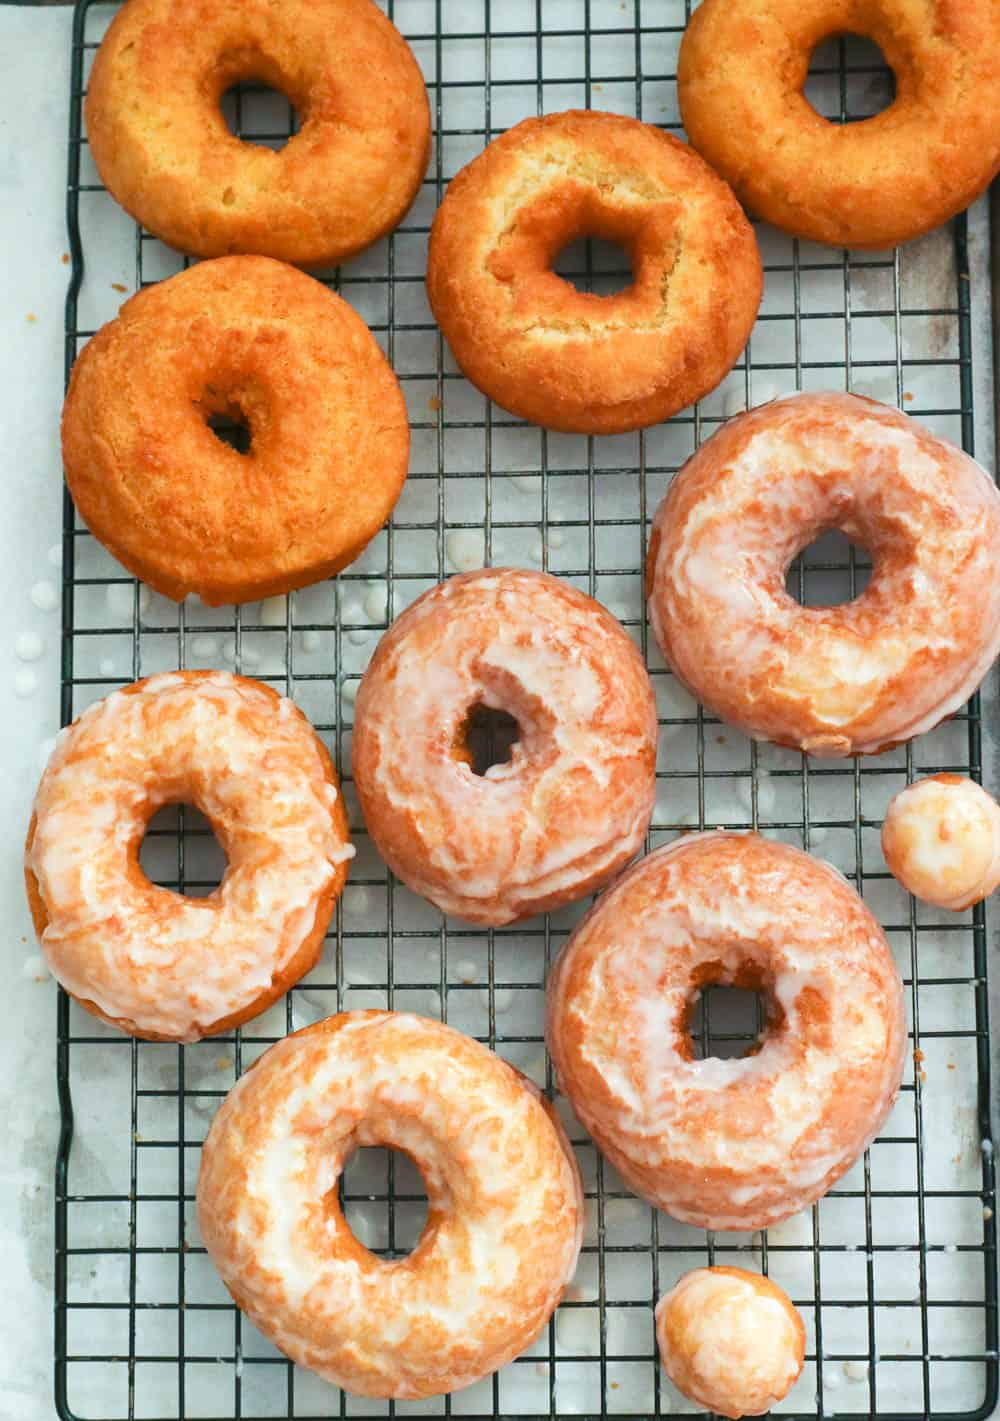 Old-fashioned doughnuts on a cooling rack